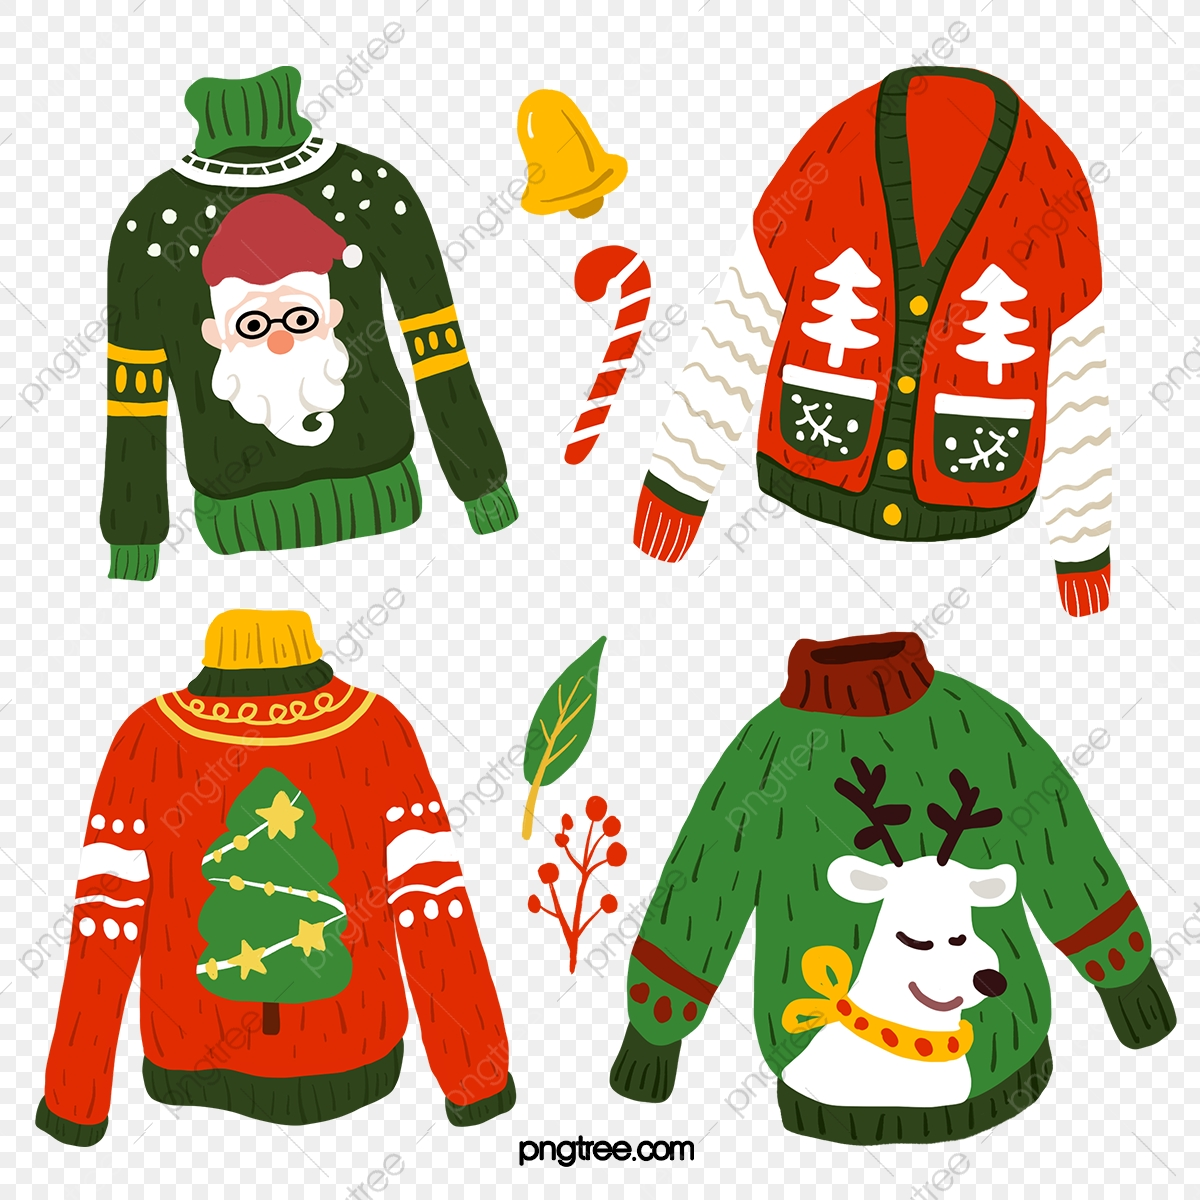 Sweater Png, Vector, PSD, and Clipart With Transparent